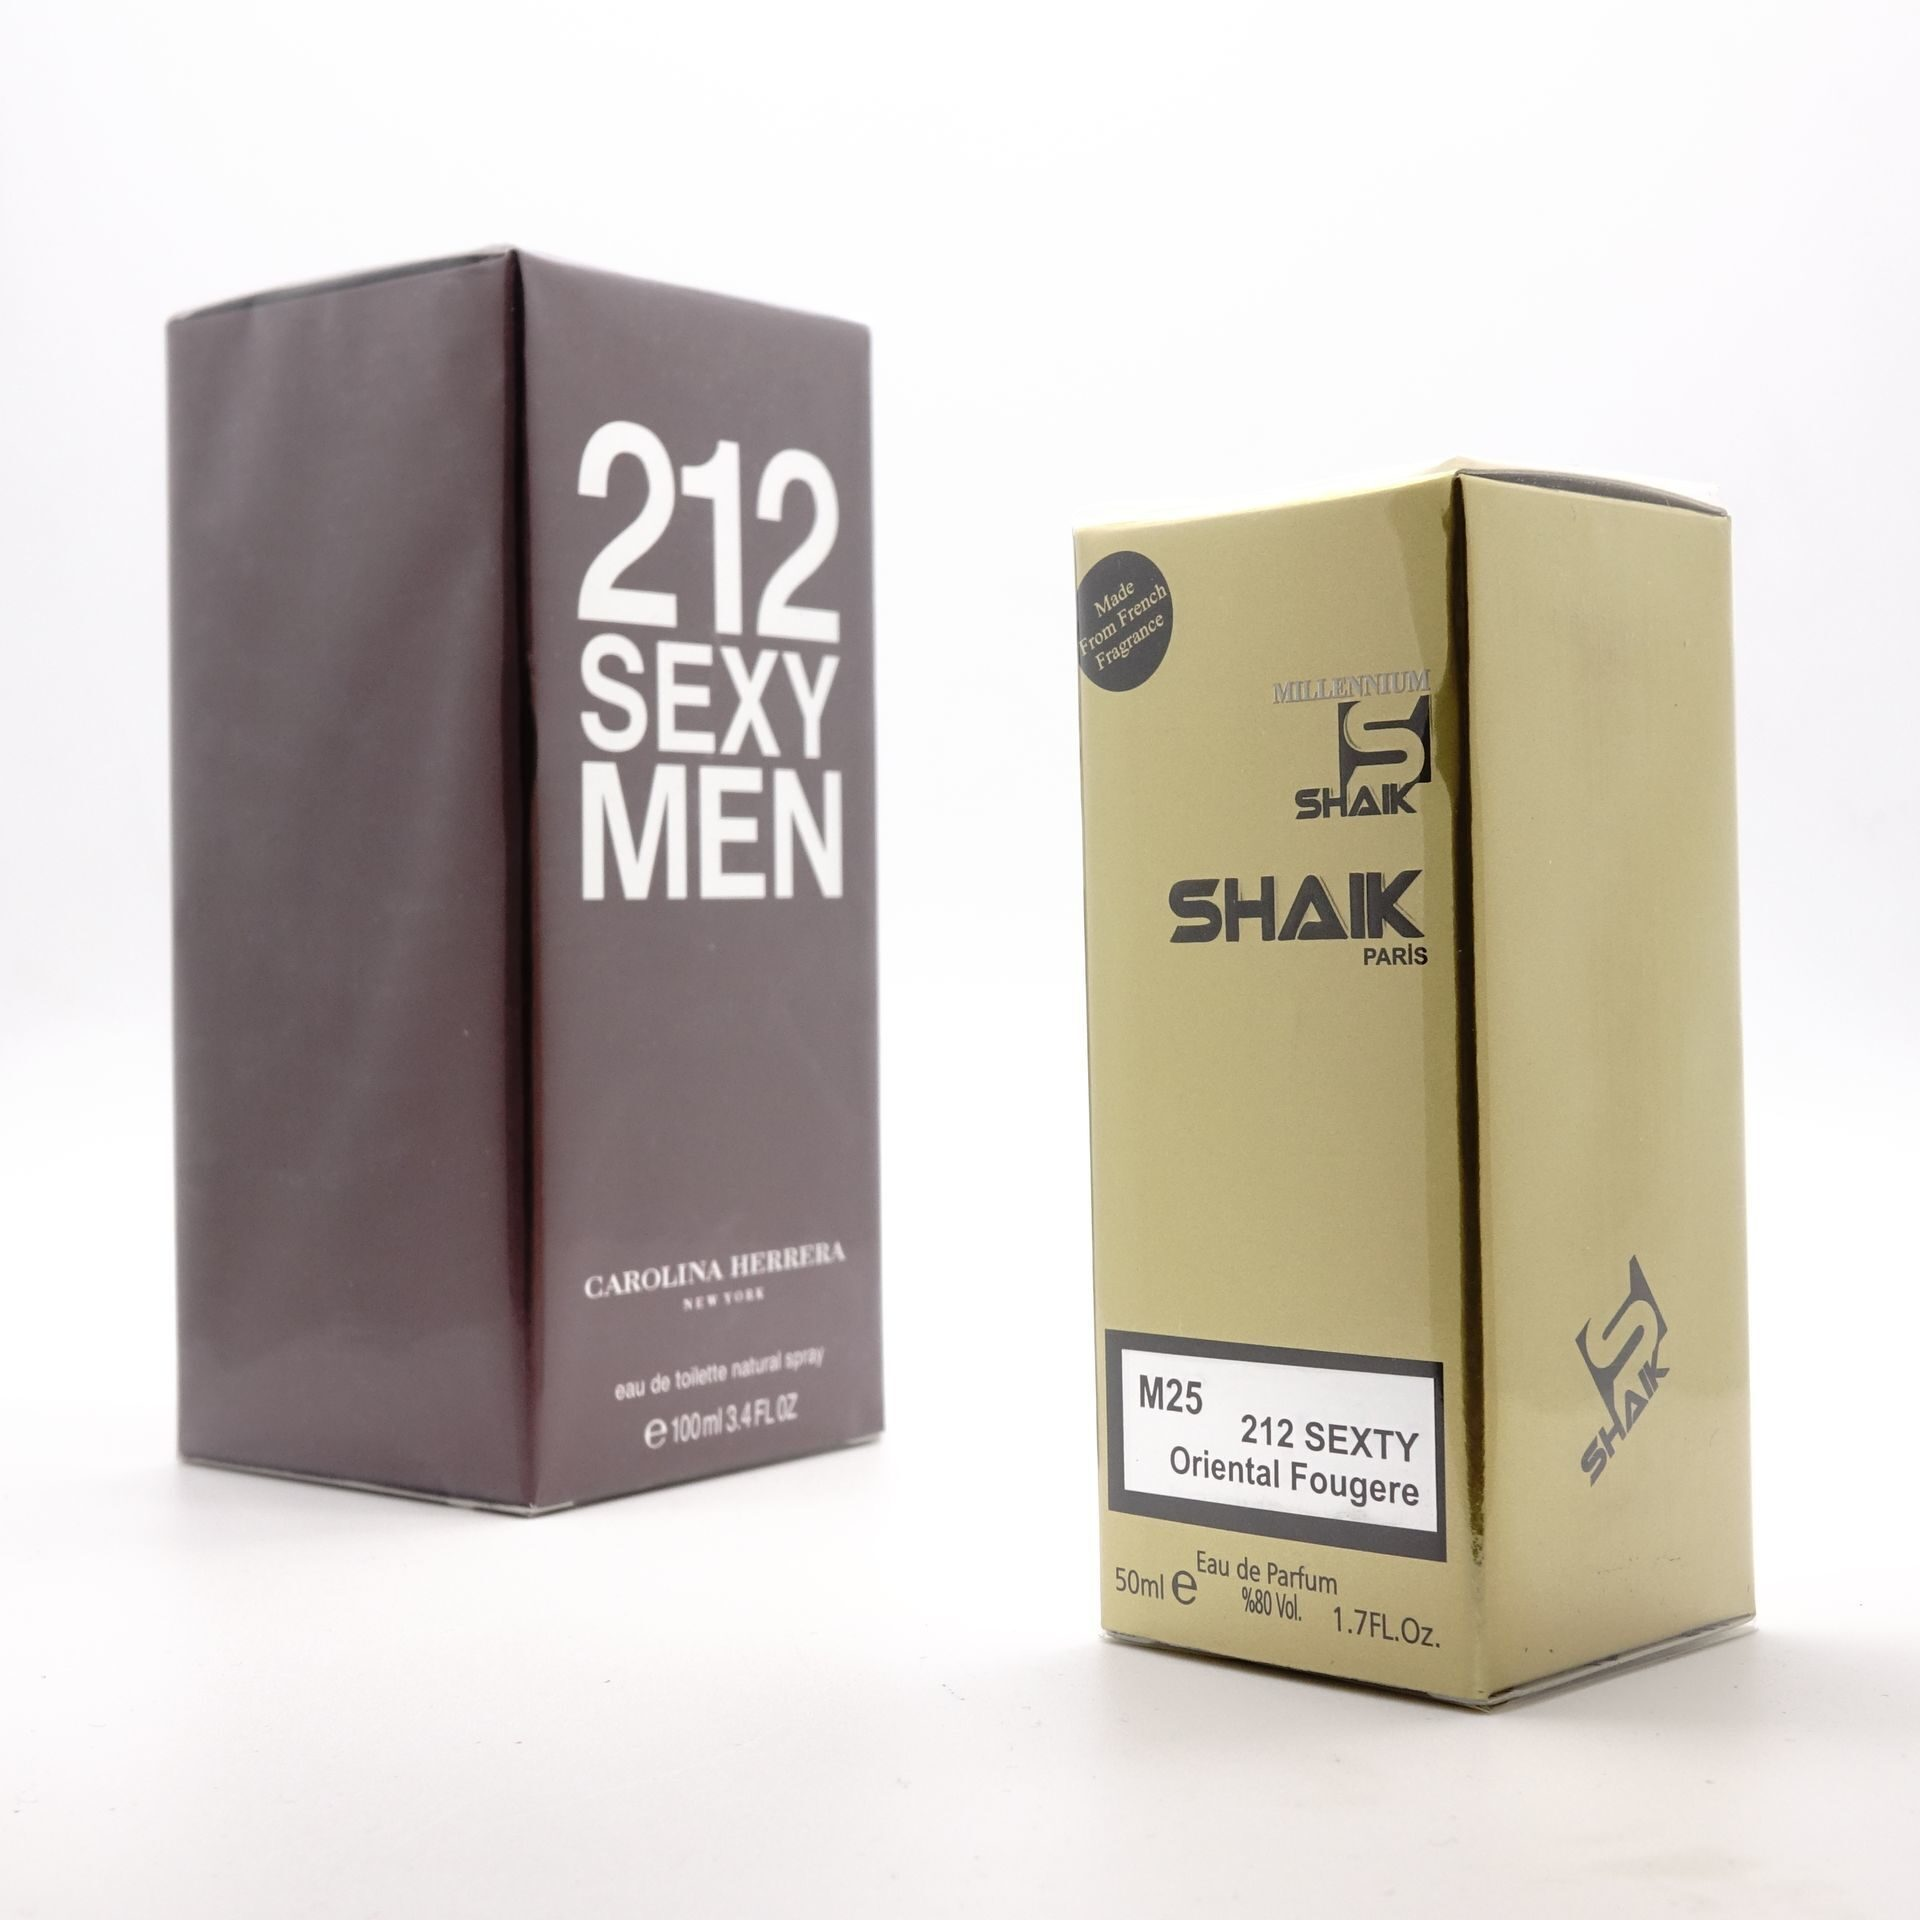 SHAIK M 25 (СH 212 SEXY FOR MEN) 50ml